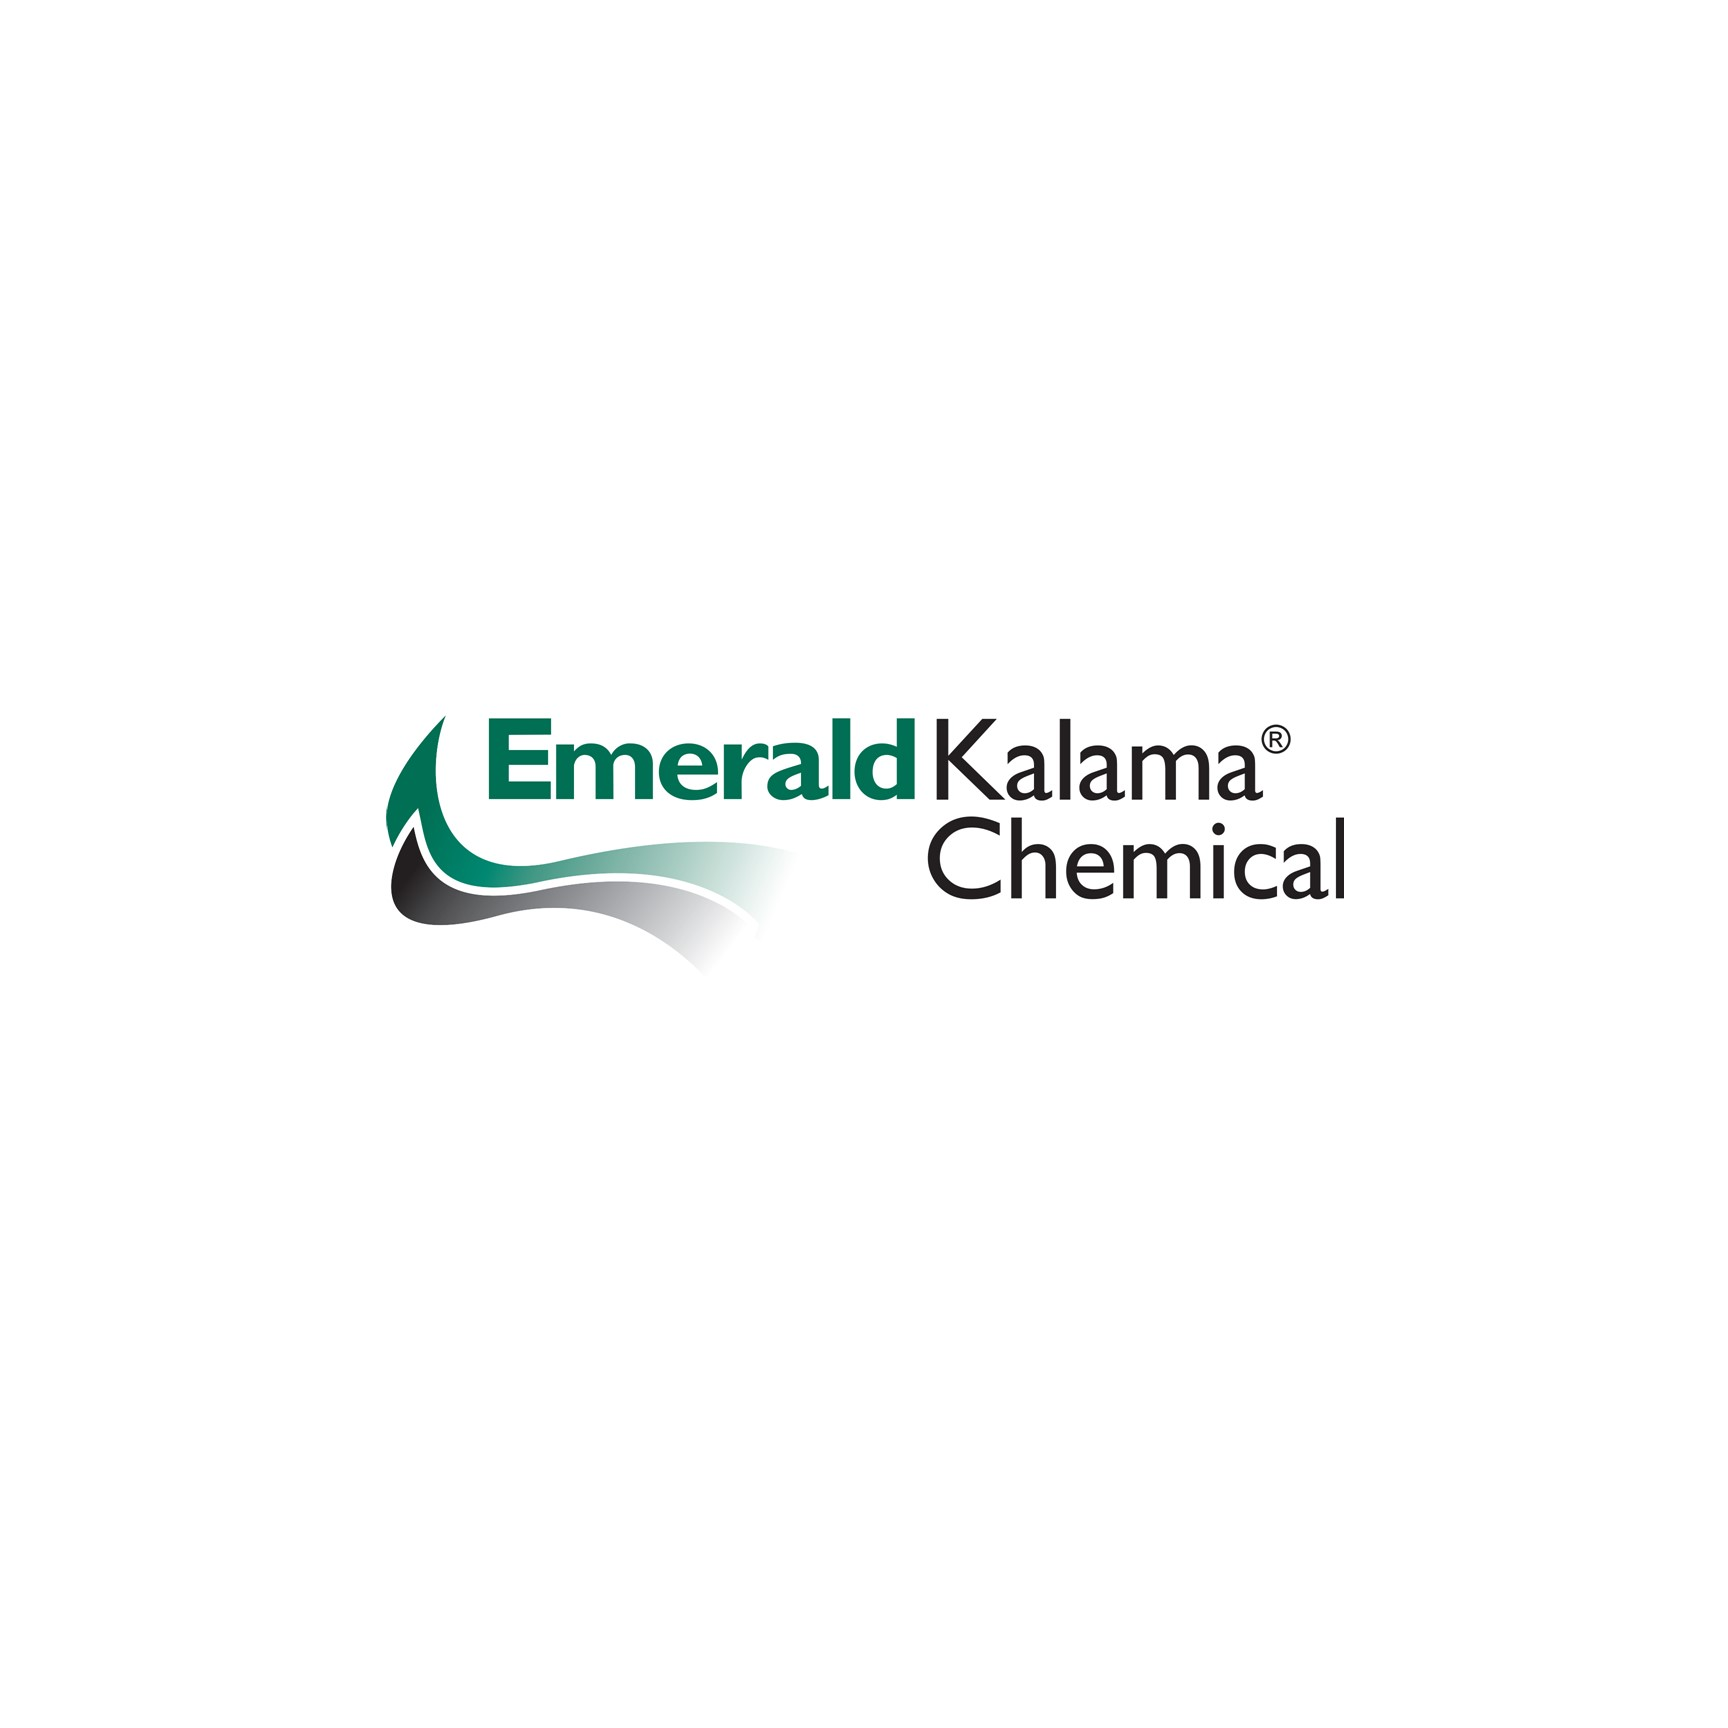 Emerald Kalama Chemical Logo